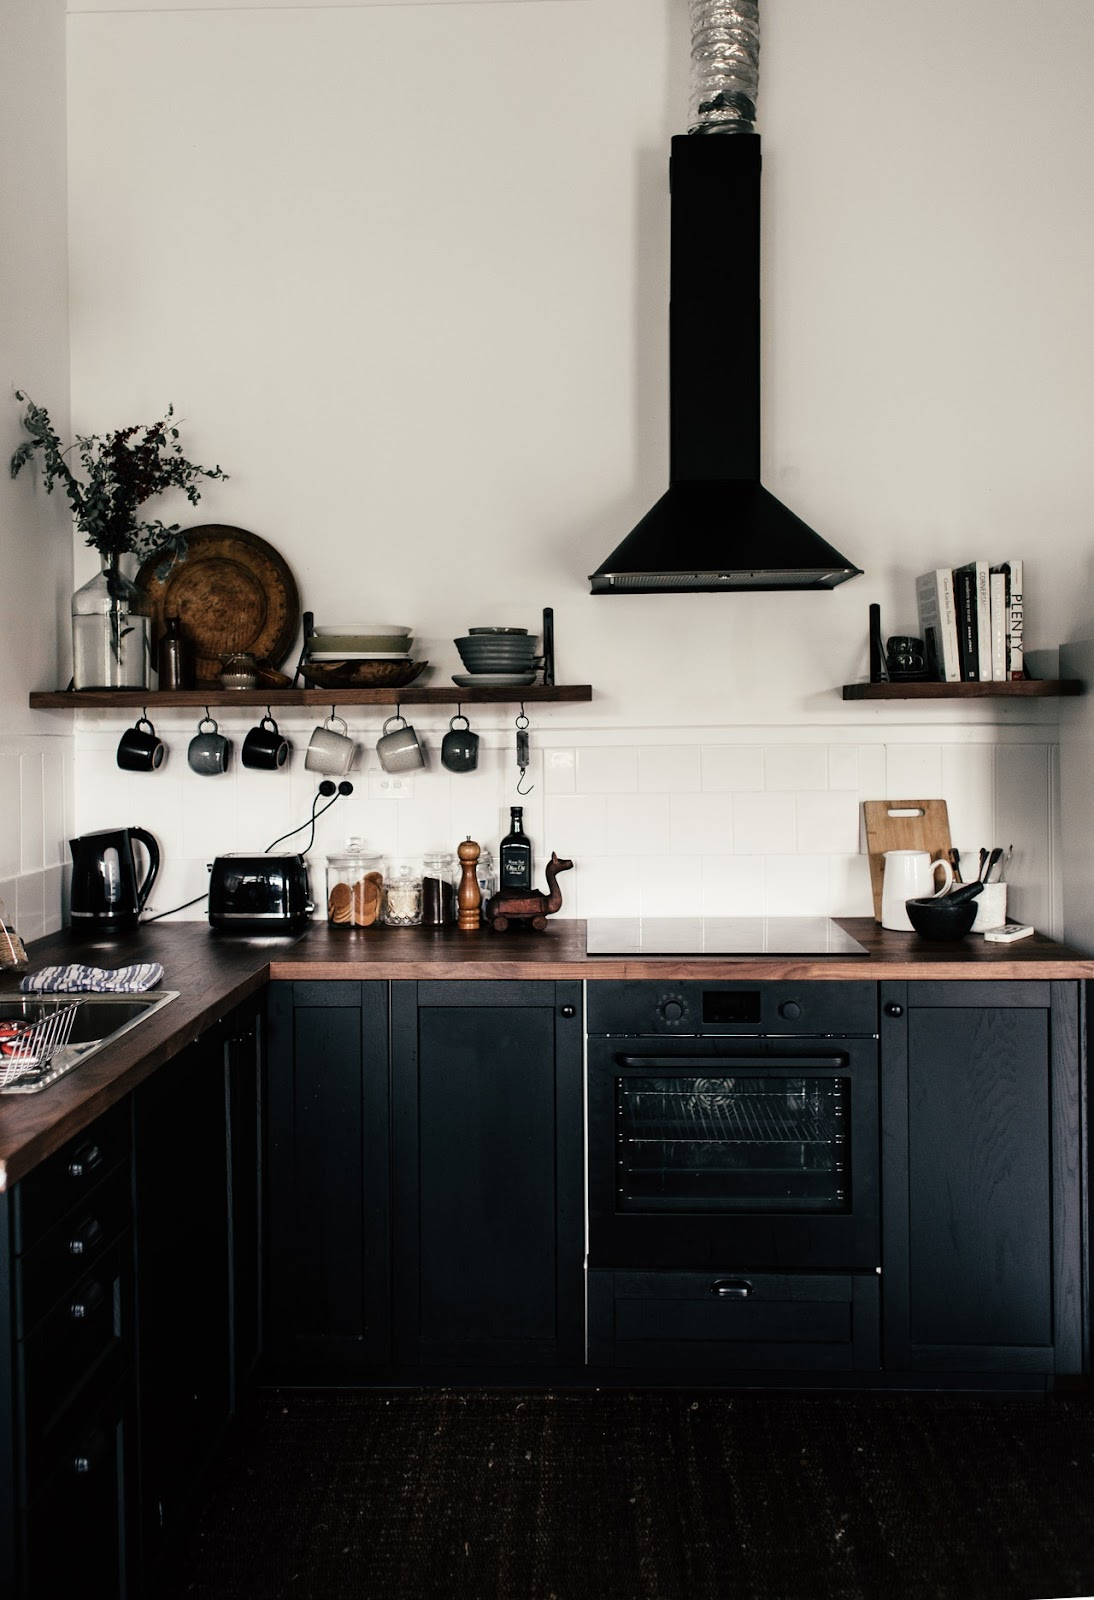 Black Open Cabinet Design suit every kitchen; wooden planks fitted on walls with kitchen cookware and decor.